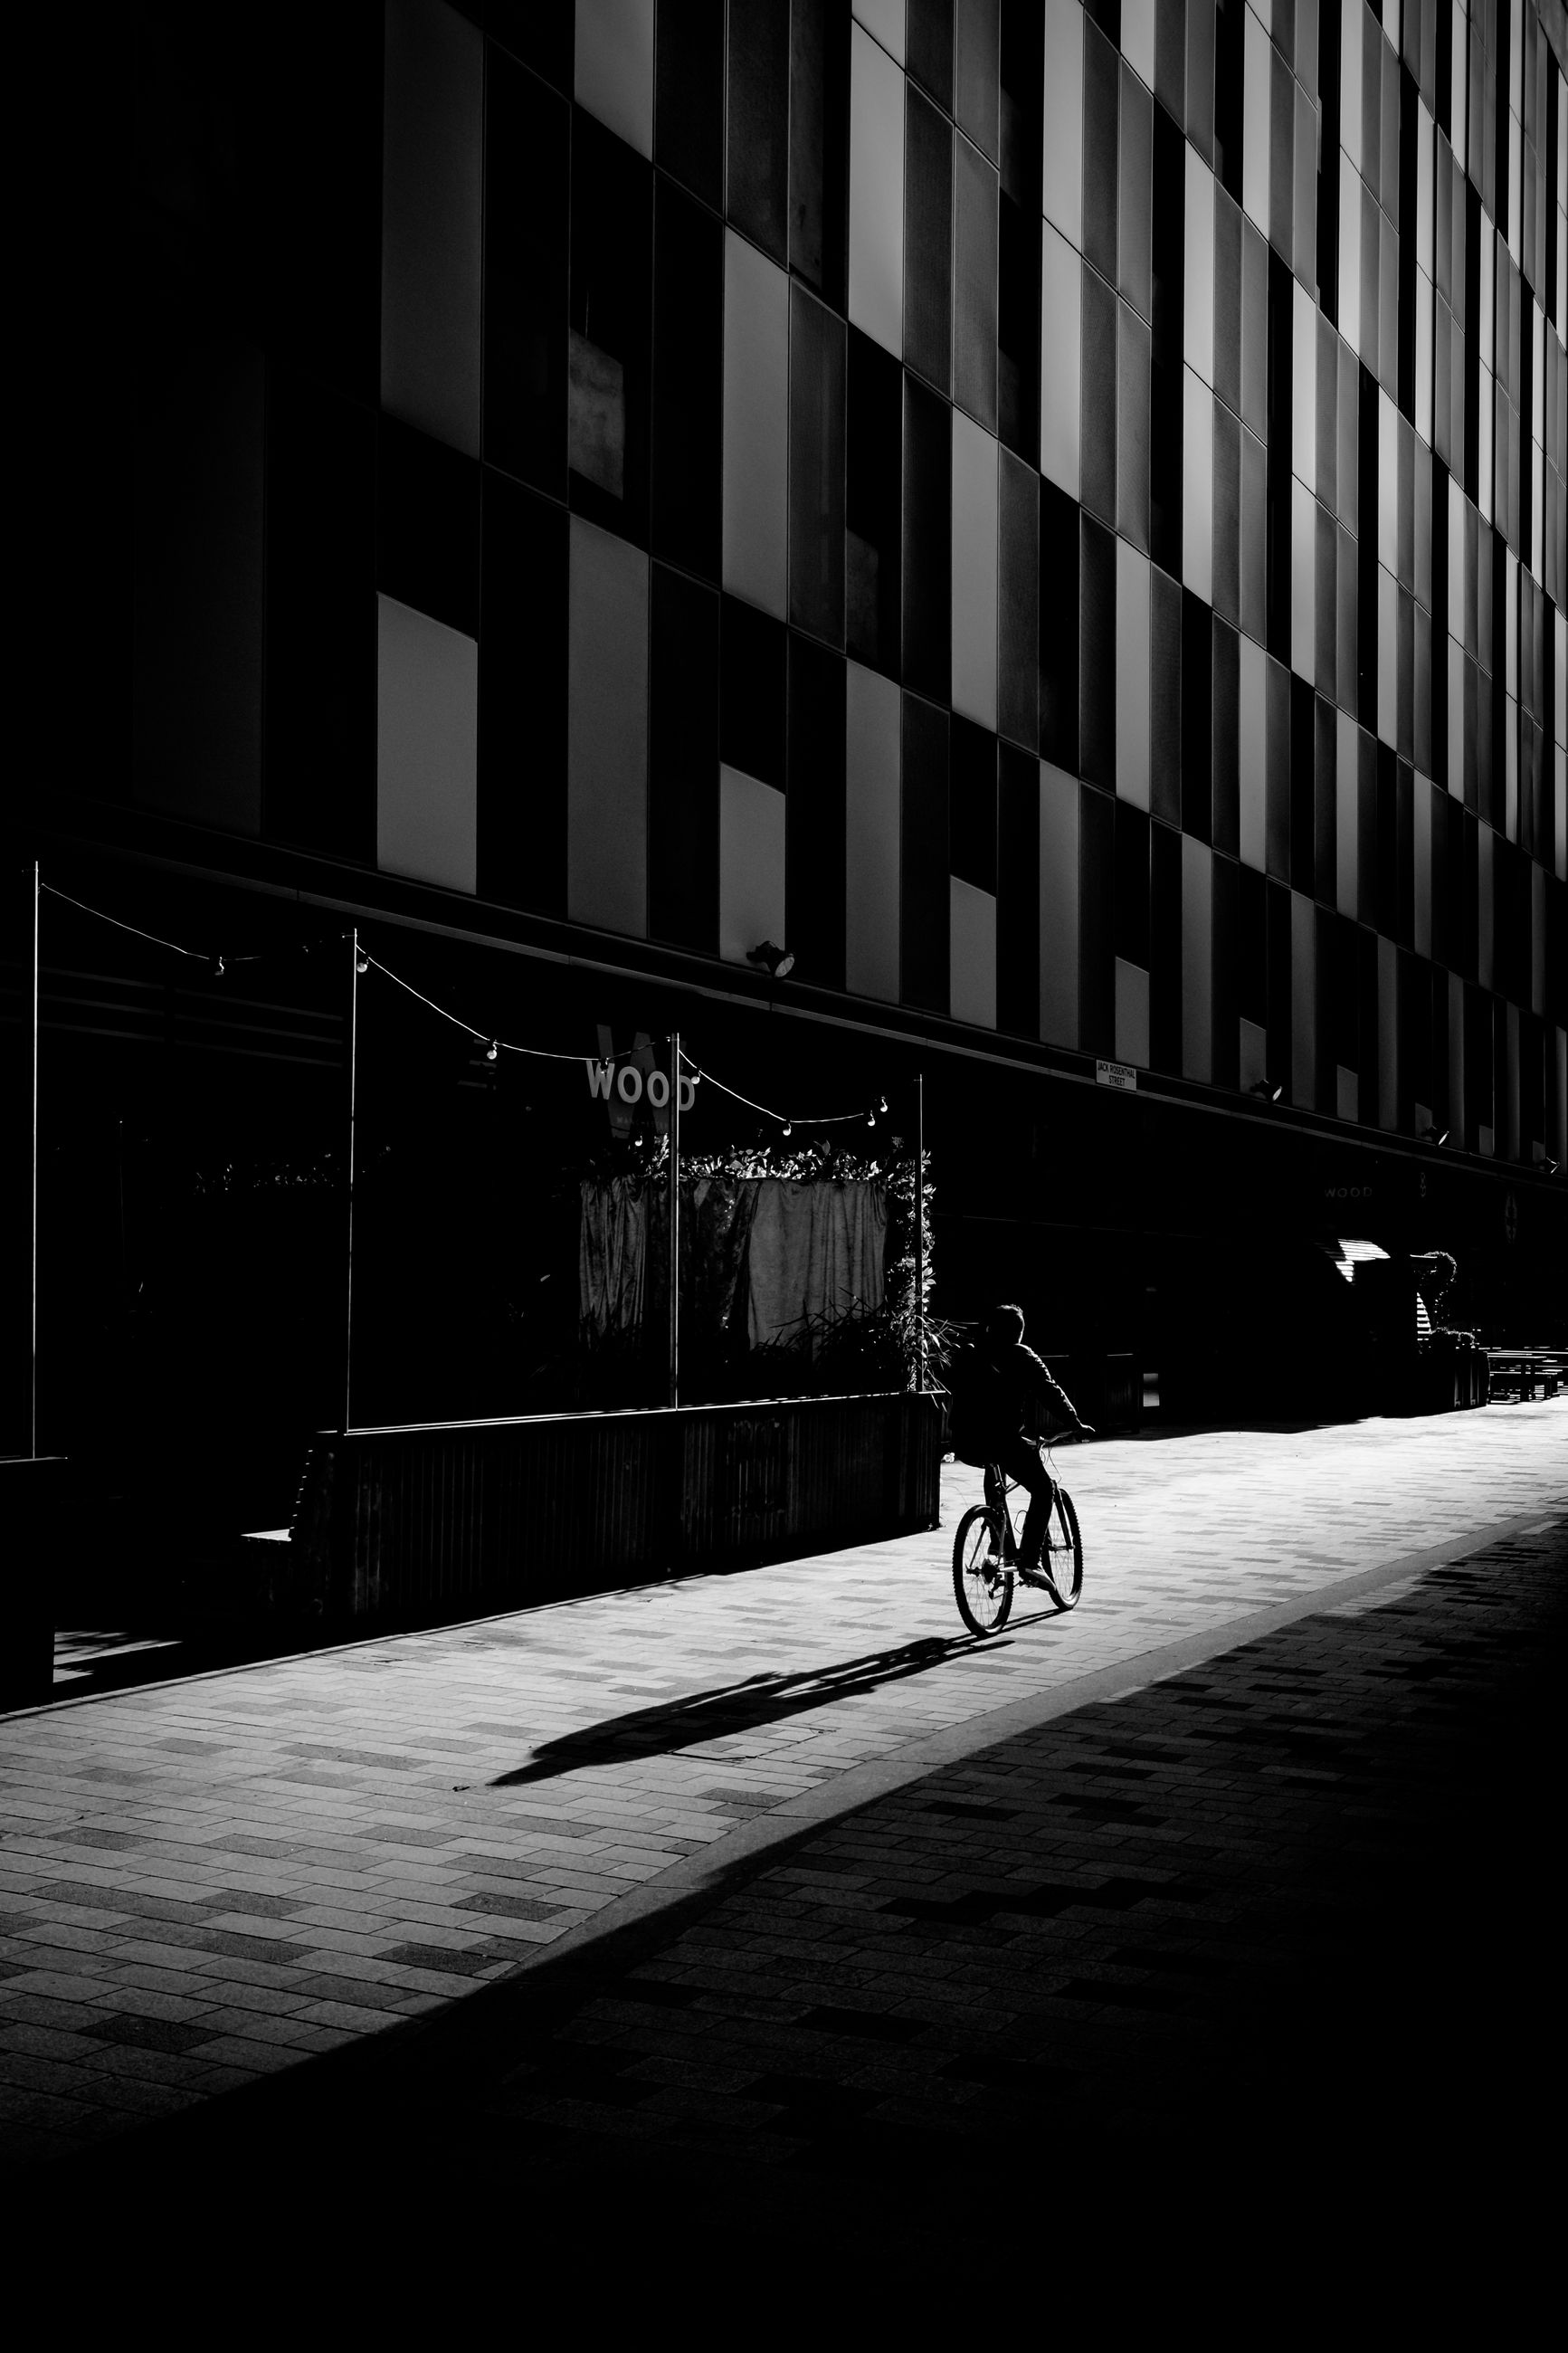 architecture, transportation, built structure, building exterior, bicycle, city, land vehicle, mode of transportation, one person, ride, riding, real people, building, men, sport, cycling, street, lifestyles, motion, outdoors, dark, office building exterior